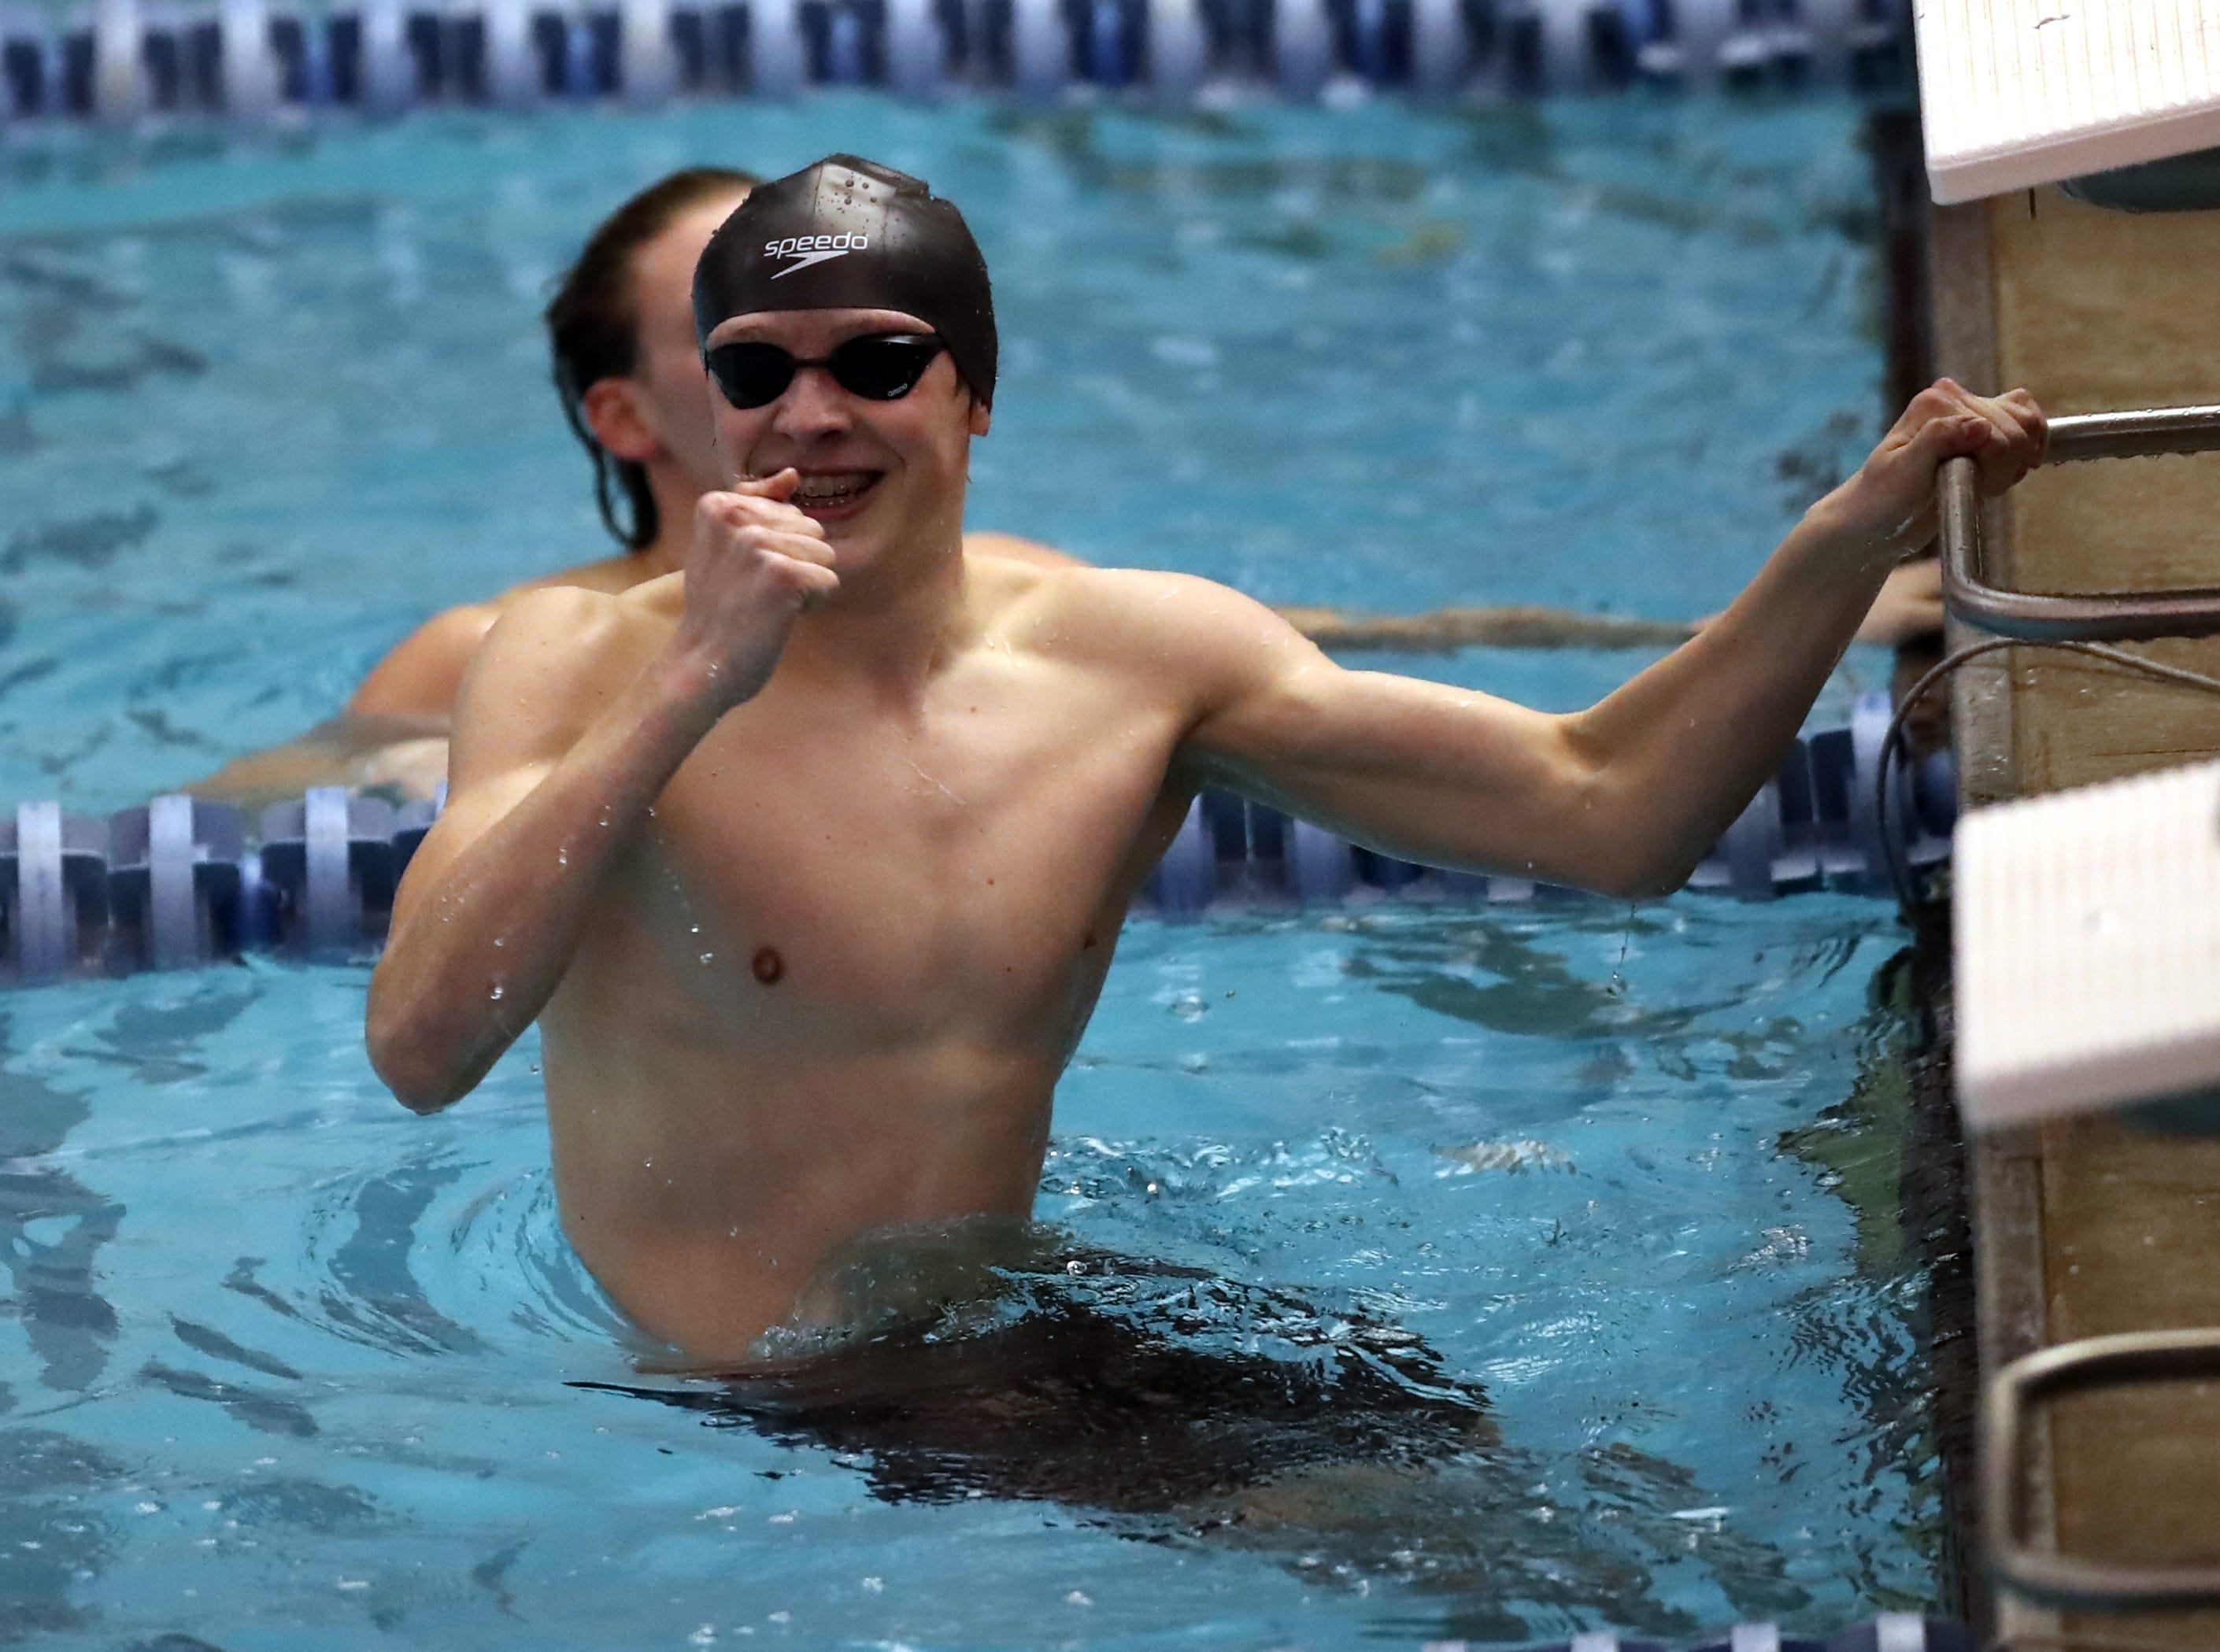 Jack Banks from Highlands reacts as he wins the Boys 100 Yard Butterfly at the Regional Final at the KHSAA Regional Swimming Finals in Erlanger, Kentucky.